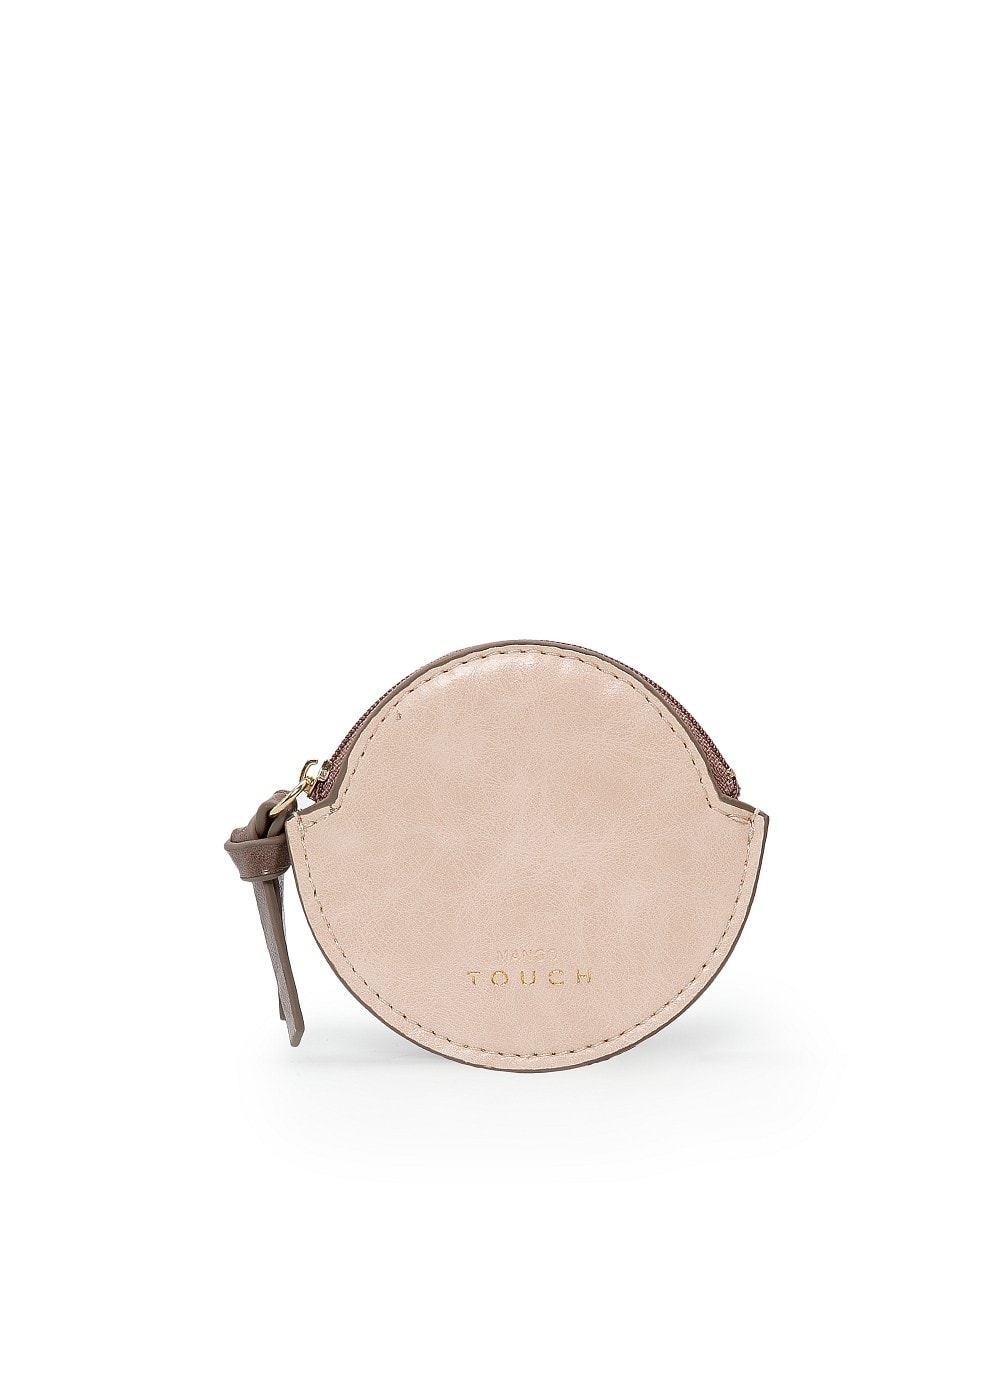 Rounded leather coin purse